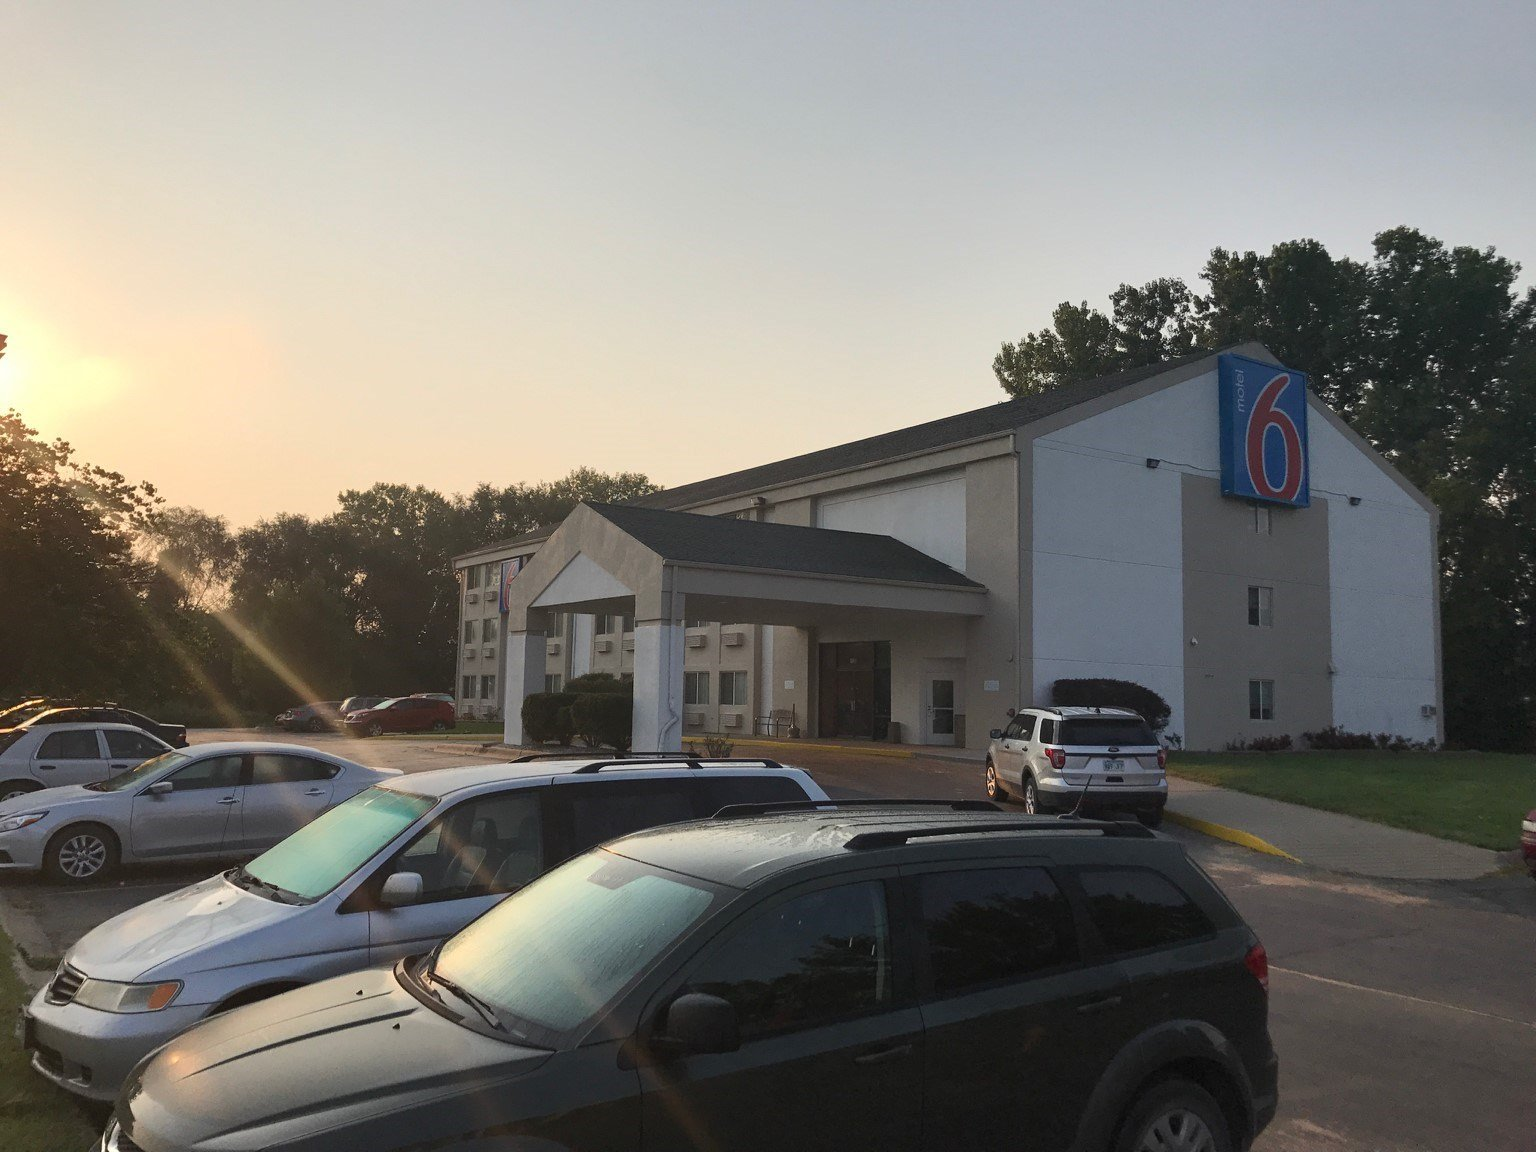 One killed, two injured in shooting inside Motel 6 in Lawrence, Kan